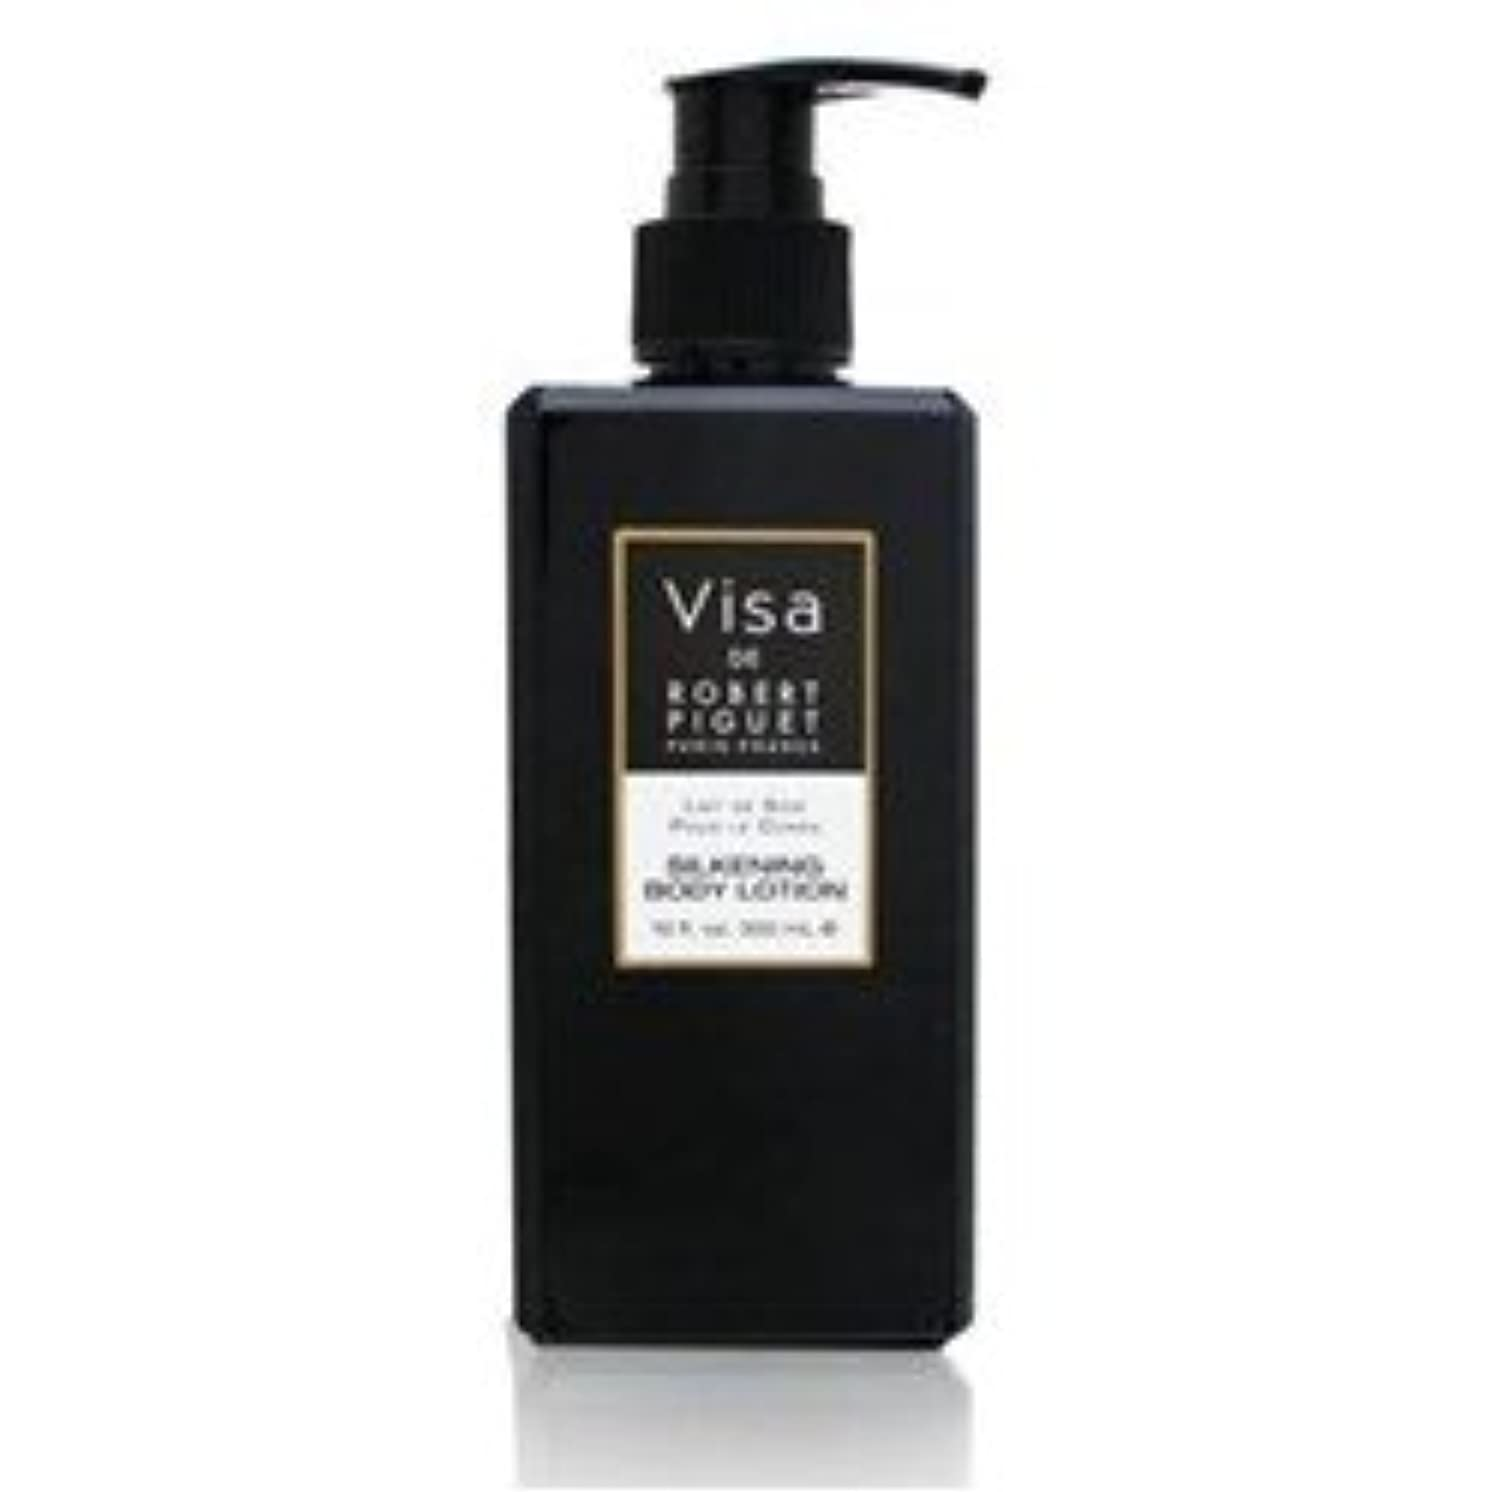 Visa (ビザ)10 oz (300ml) Body Lotion (ボディーローション) by Robert Piguet for Women